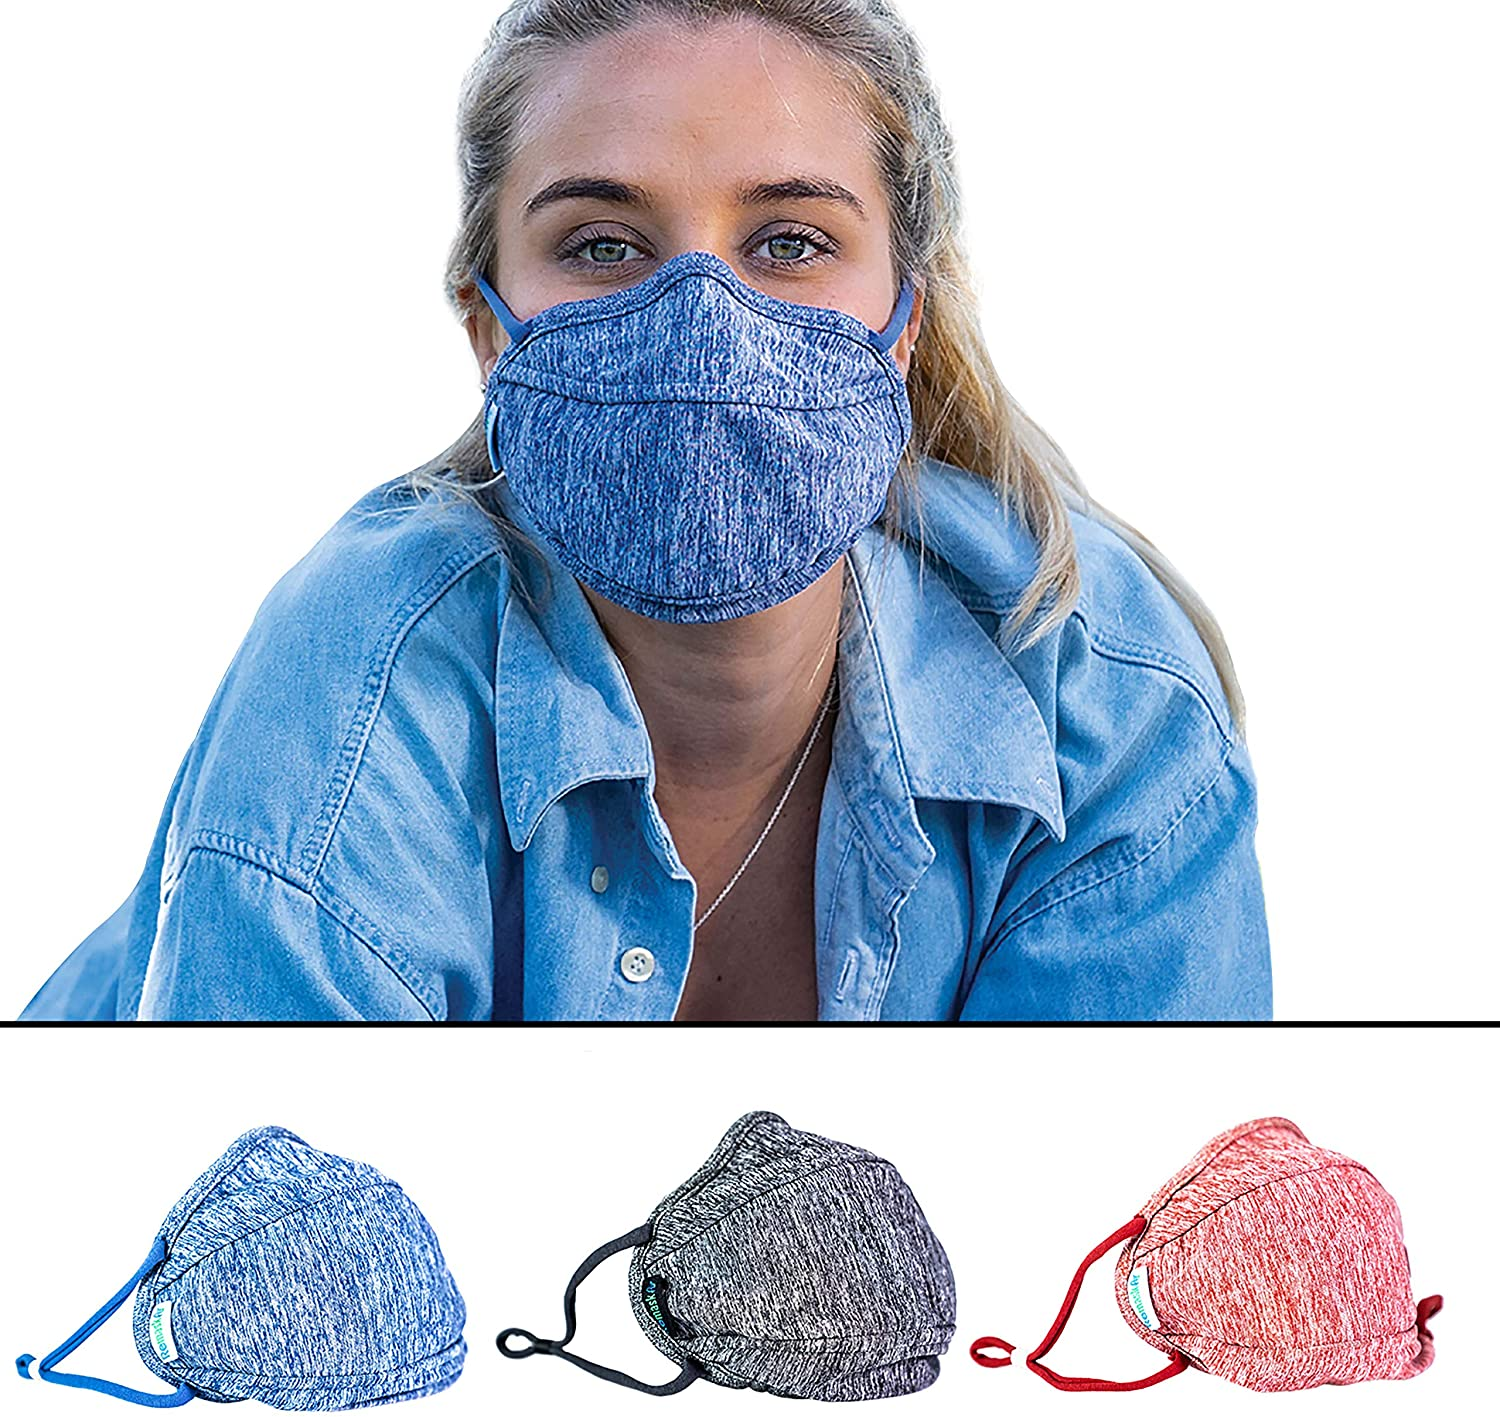 Unisex Washable Reusable Face Masks. Highest Quality material engineered for ease of breathing and clarity of voice (Pack of 3). WARM for winter and moisture repellent.